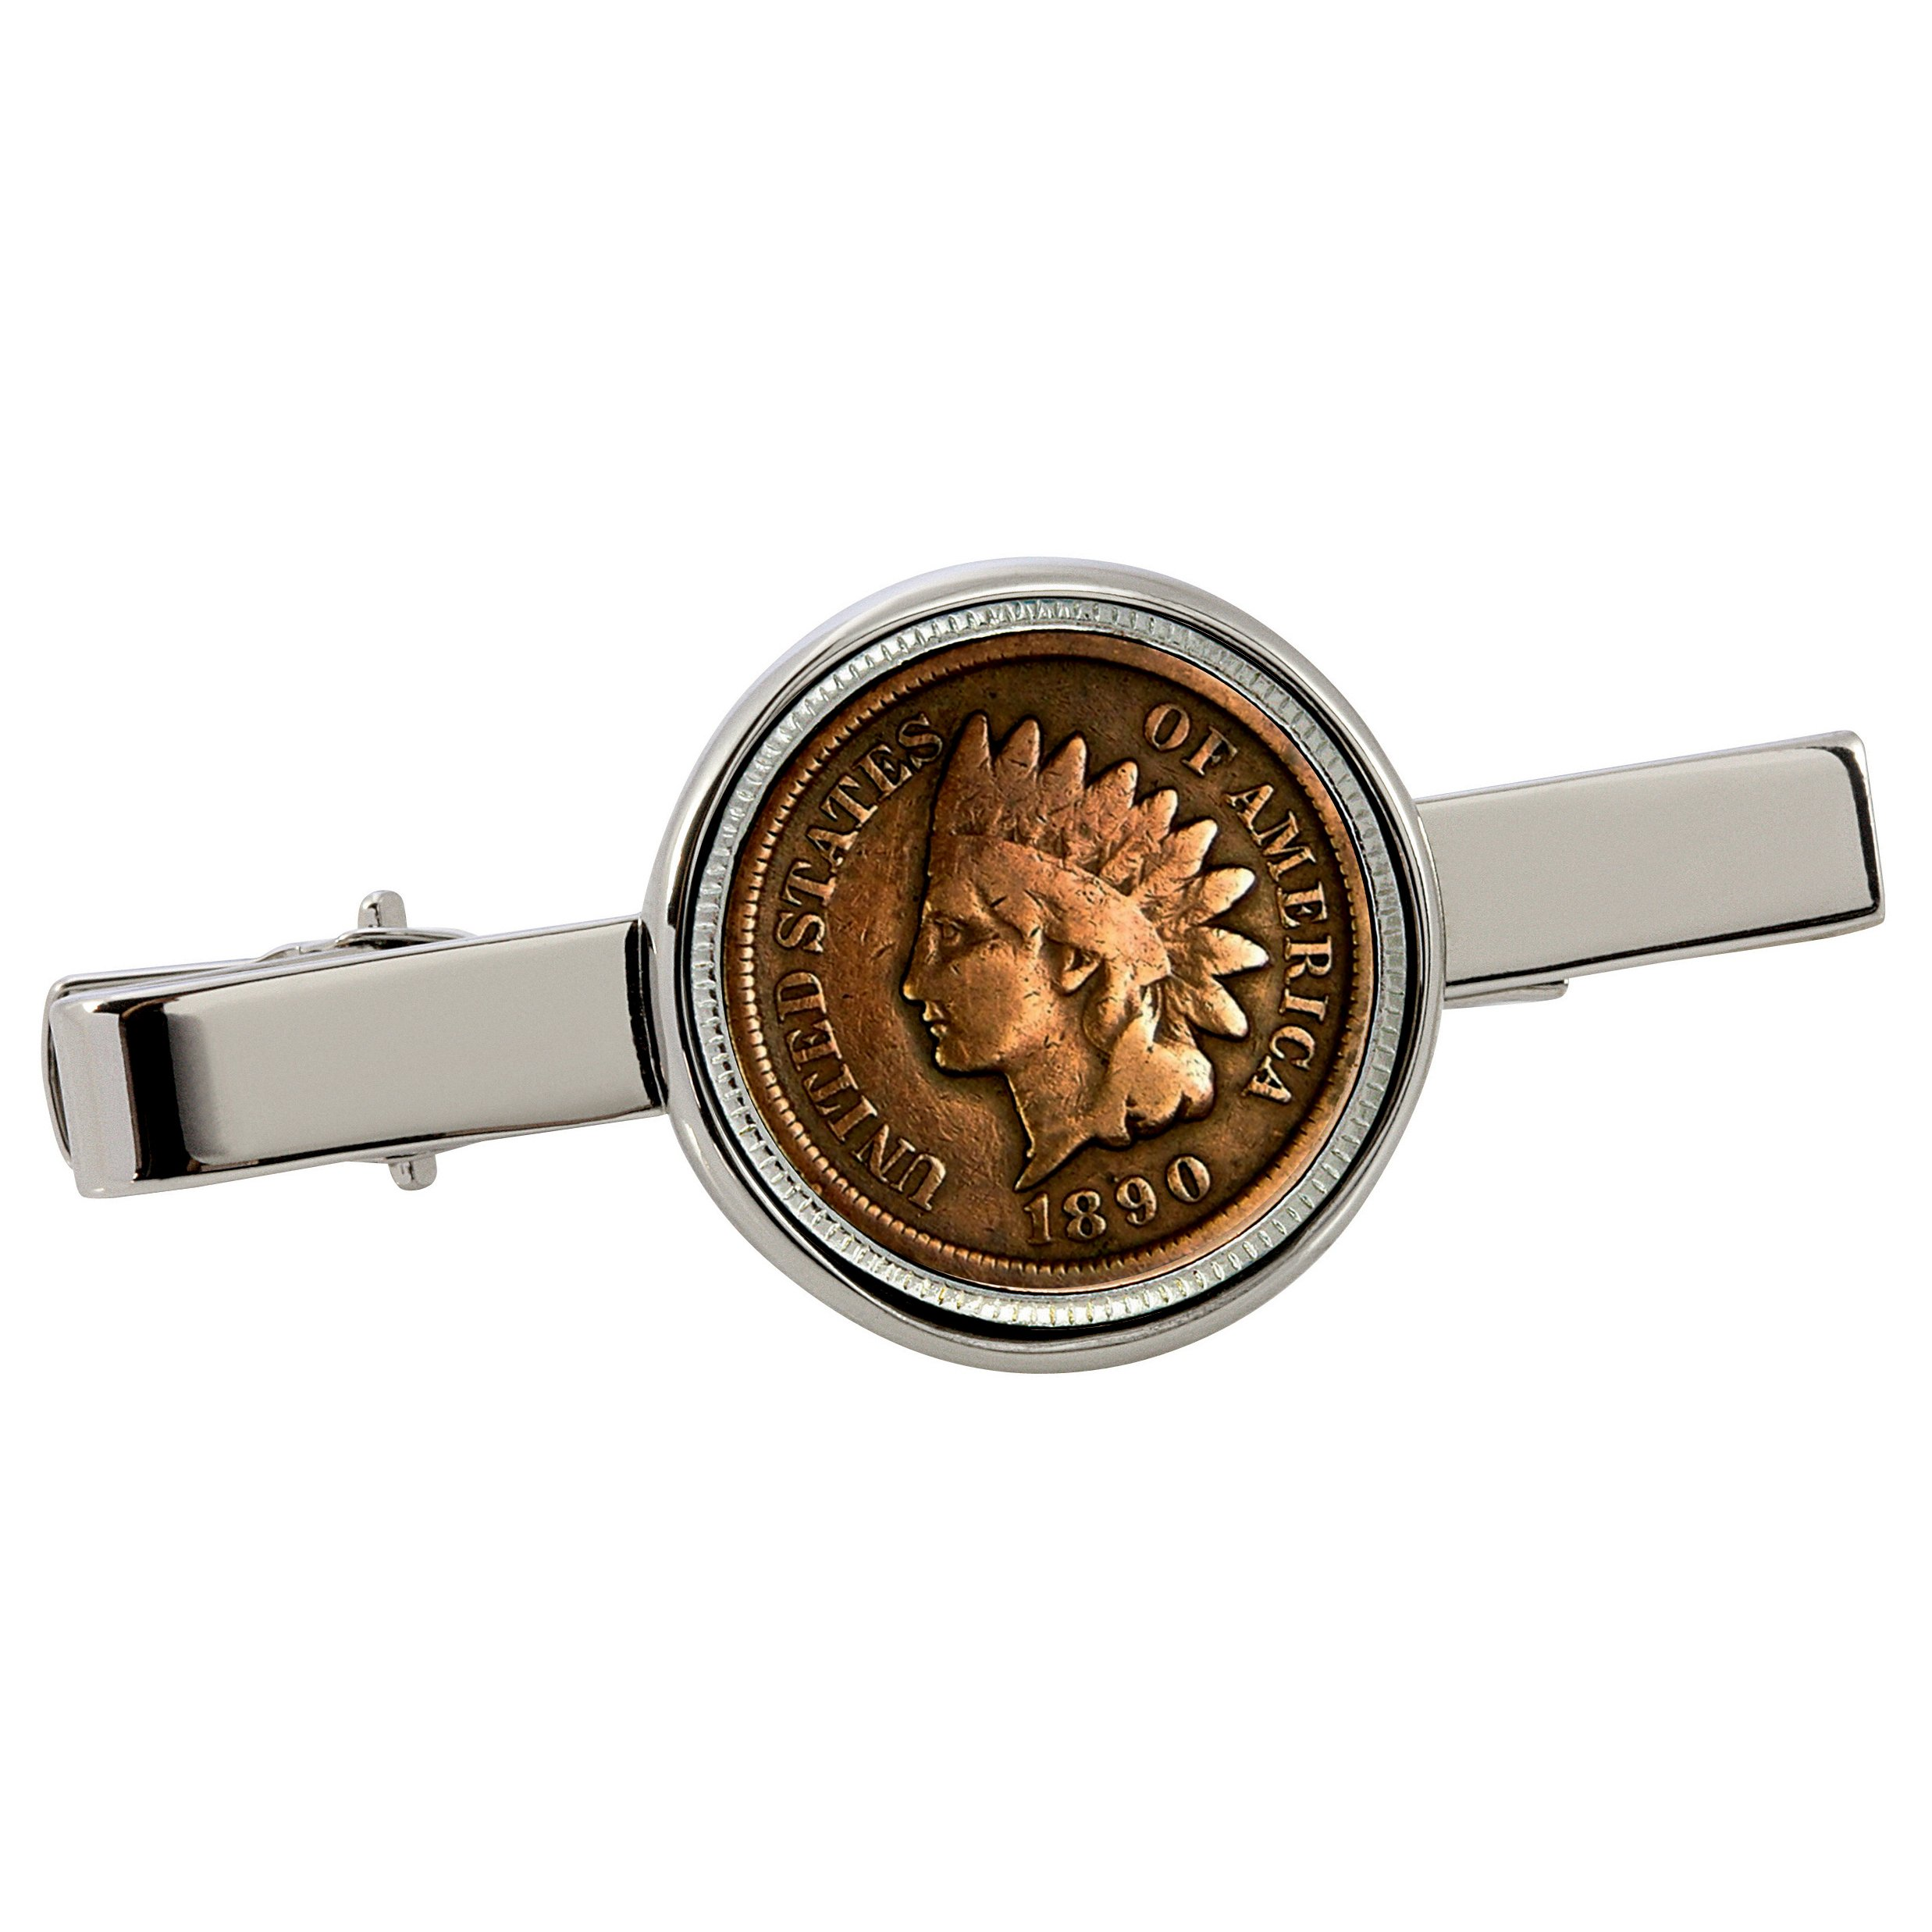 American Coin Treasures 1800's Indian Penny Silvertone Coin Tie Clip by American Coin Treasures (Image #1)